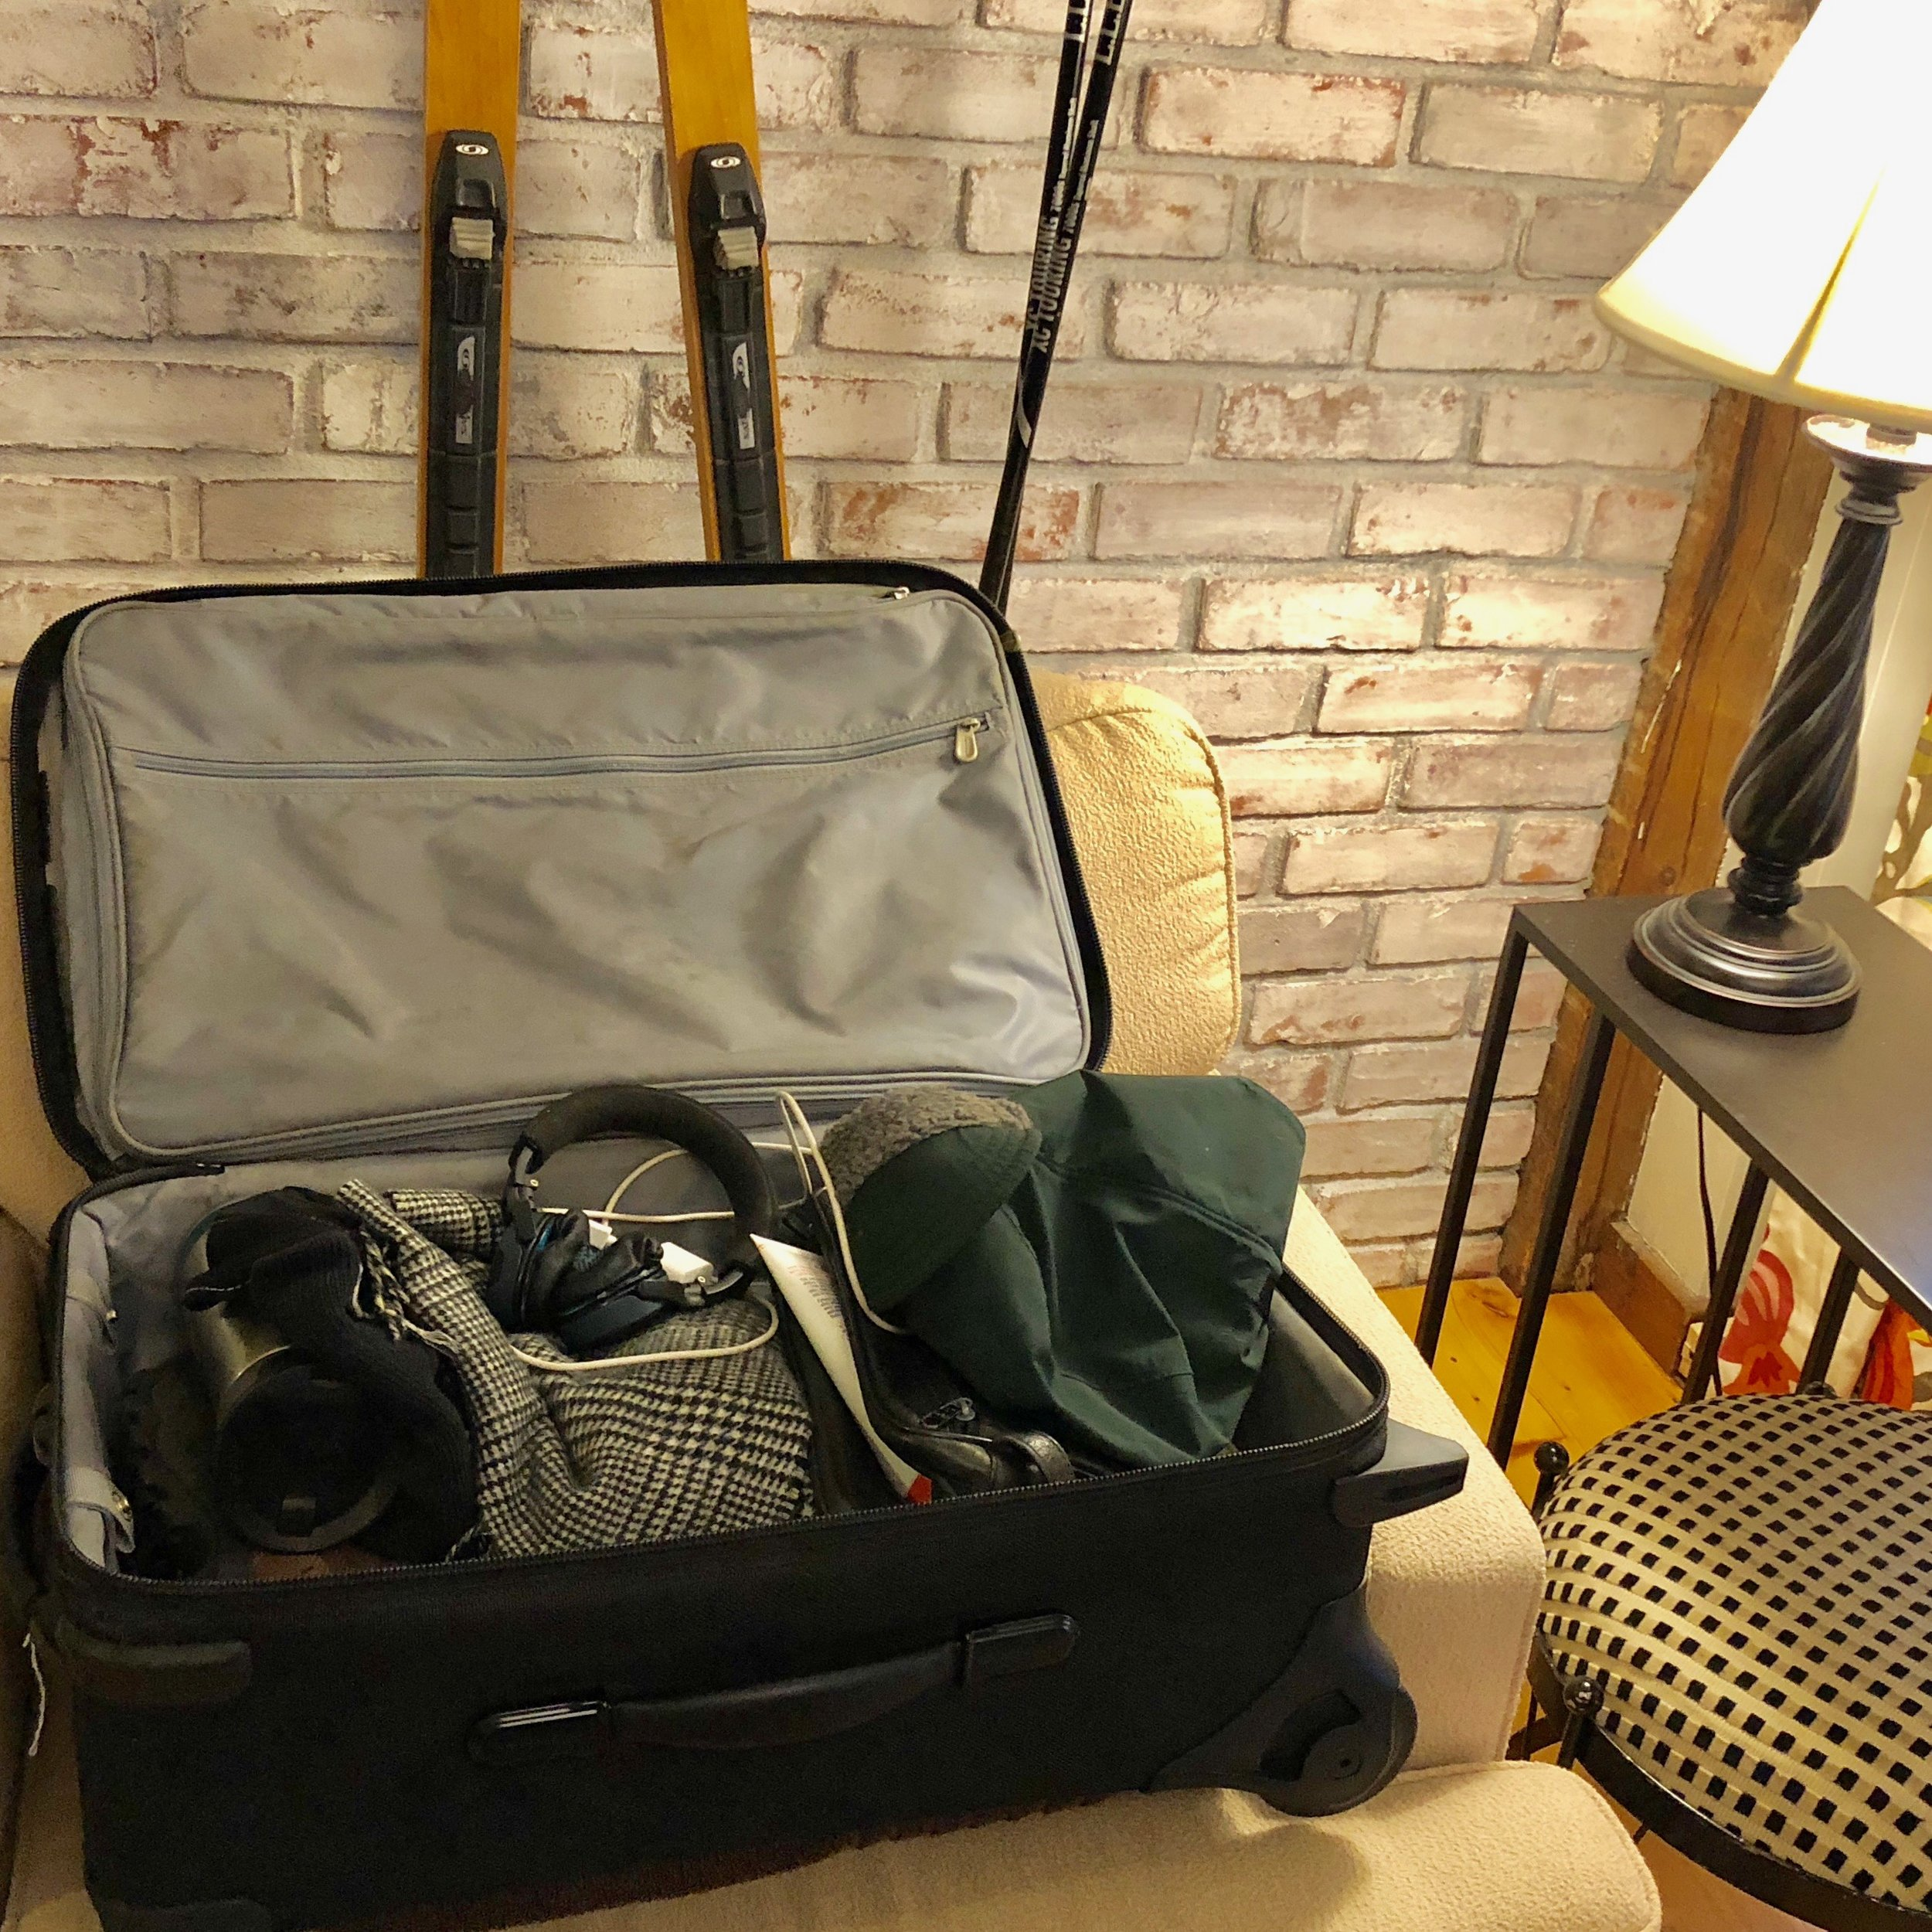 My bag was packed for Gunstock, then unpacked ...